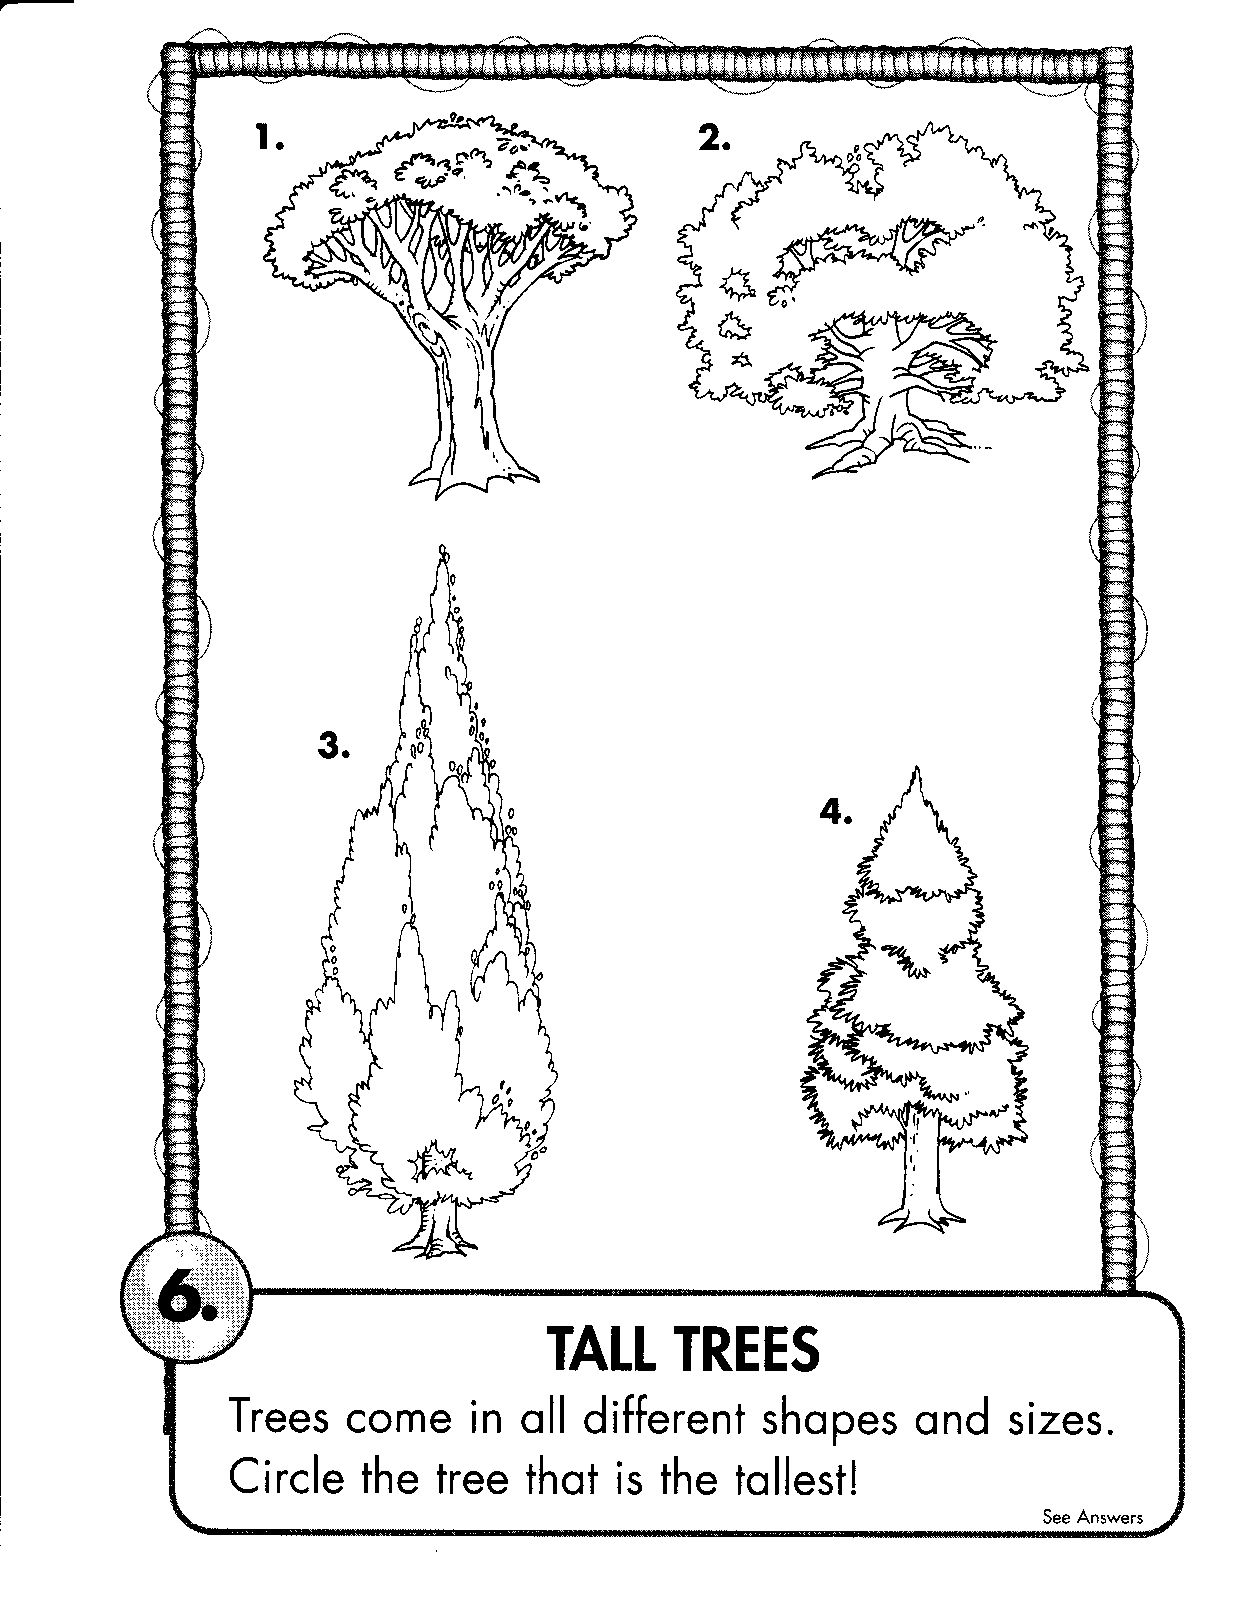 Coloring Pages Habitat Forest 44 Tall Trees Tree Coloring Page Coloring Pages Free Coloring Pages